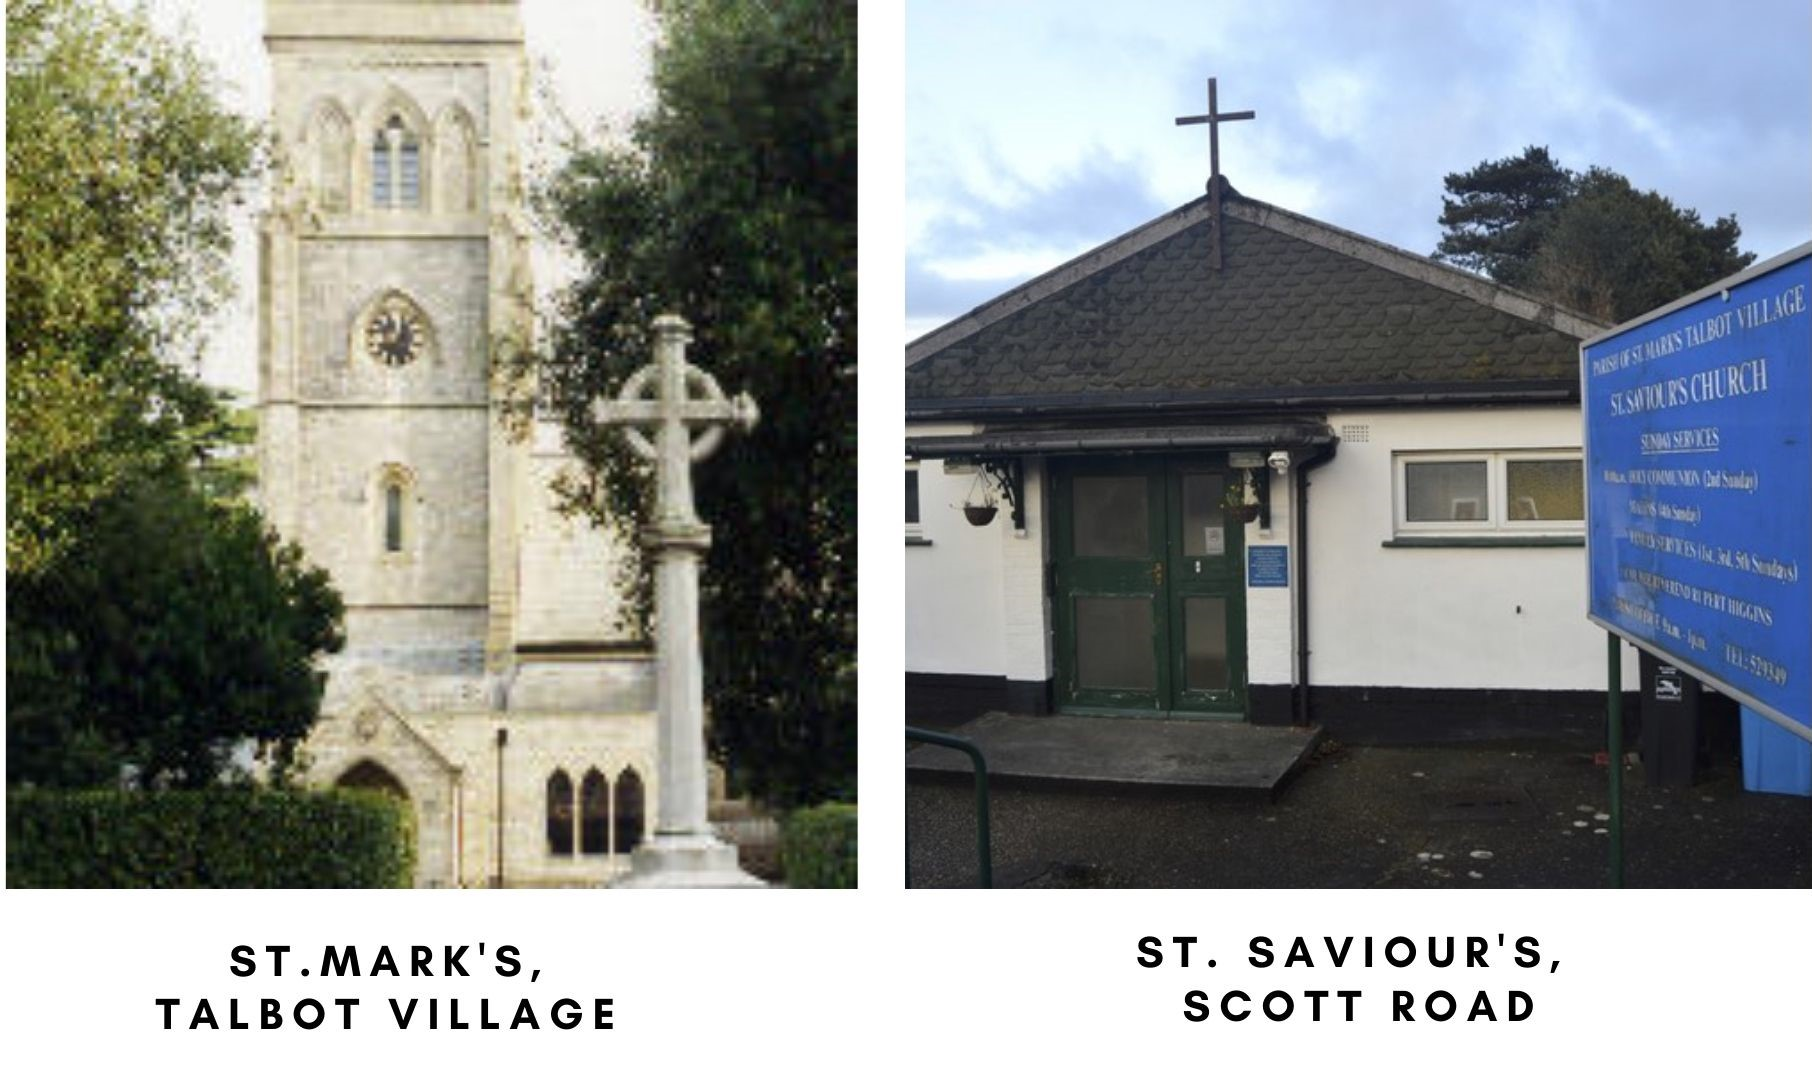 St.Mark's, Talbot Village (1)